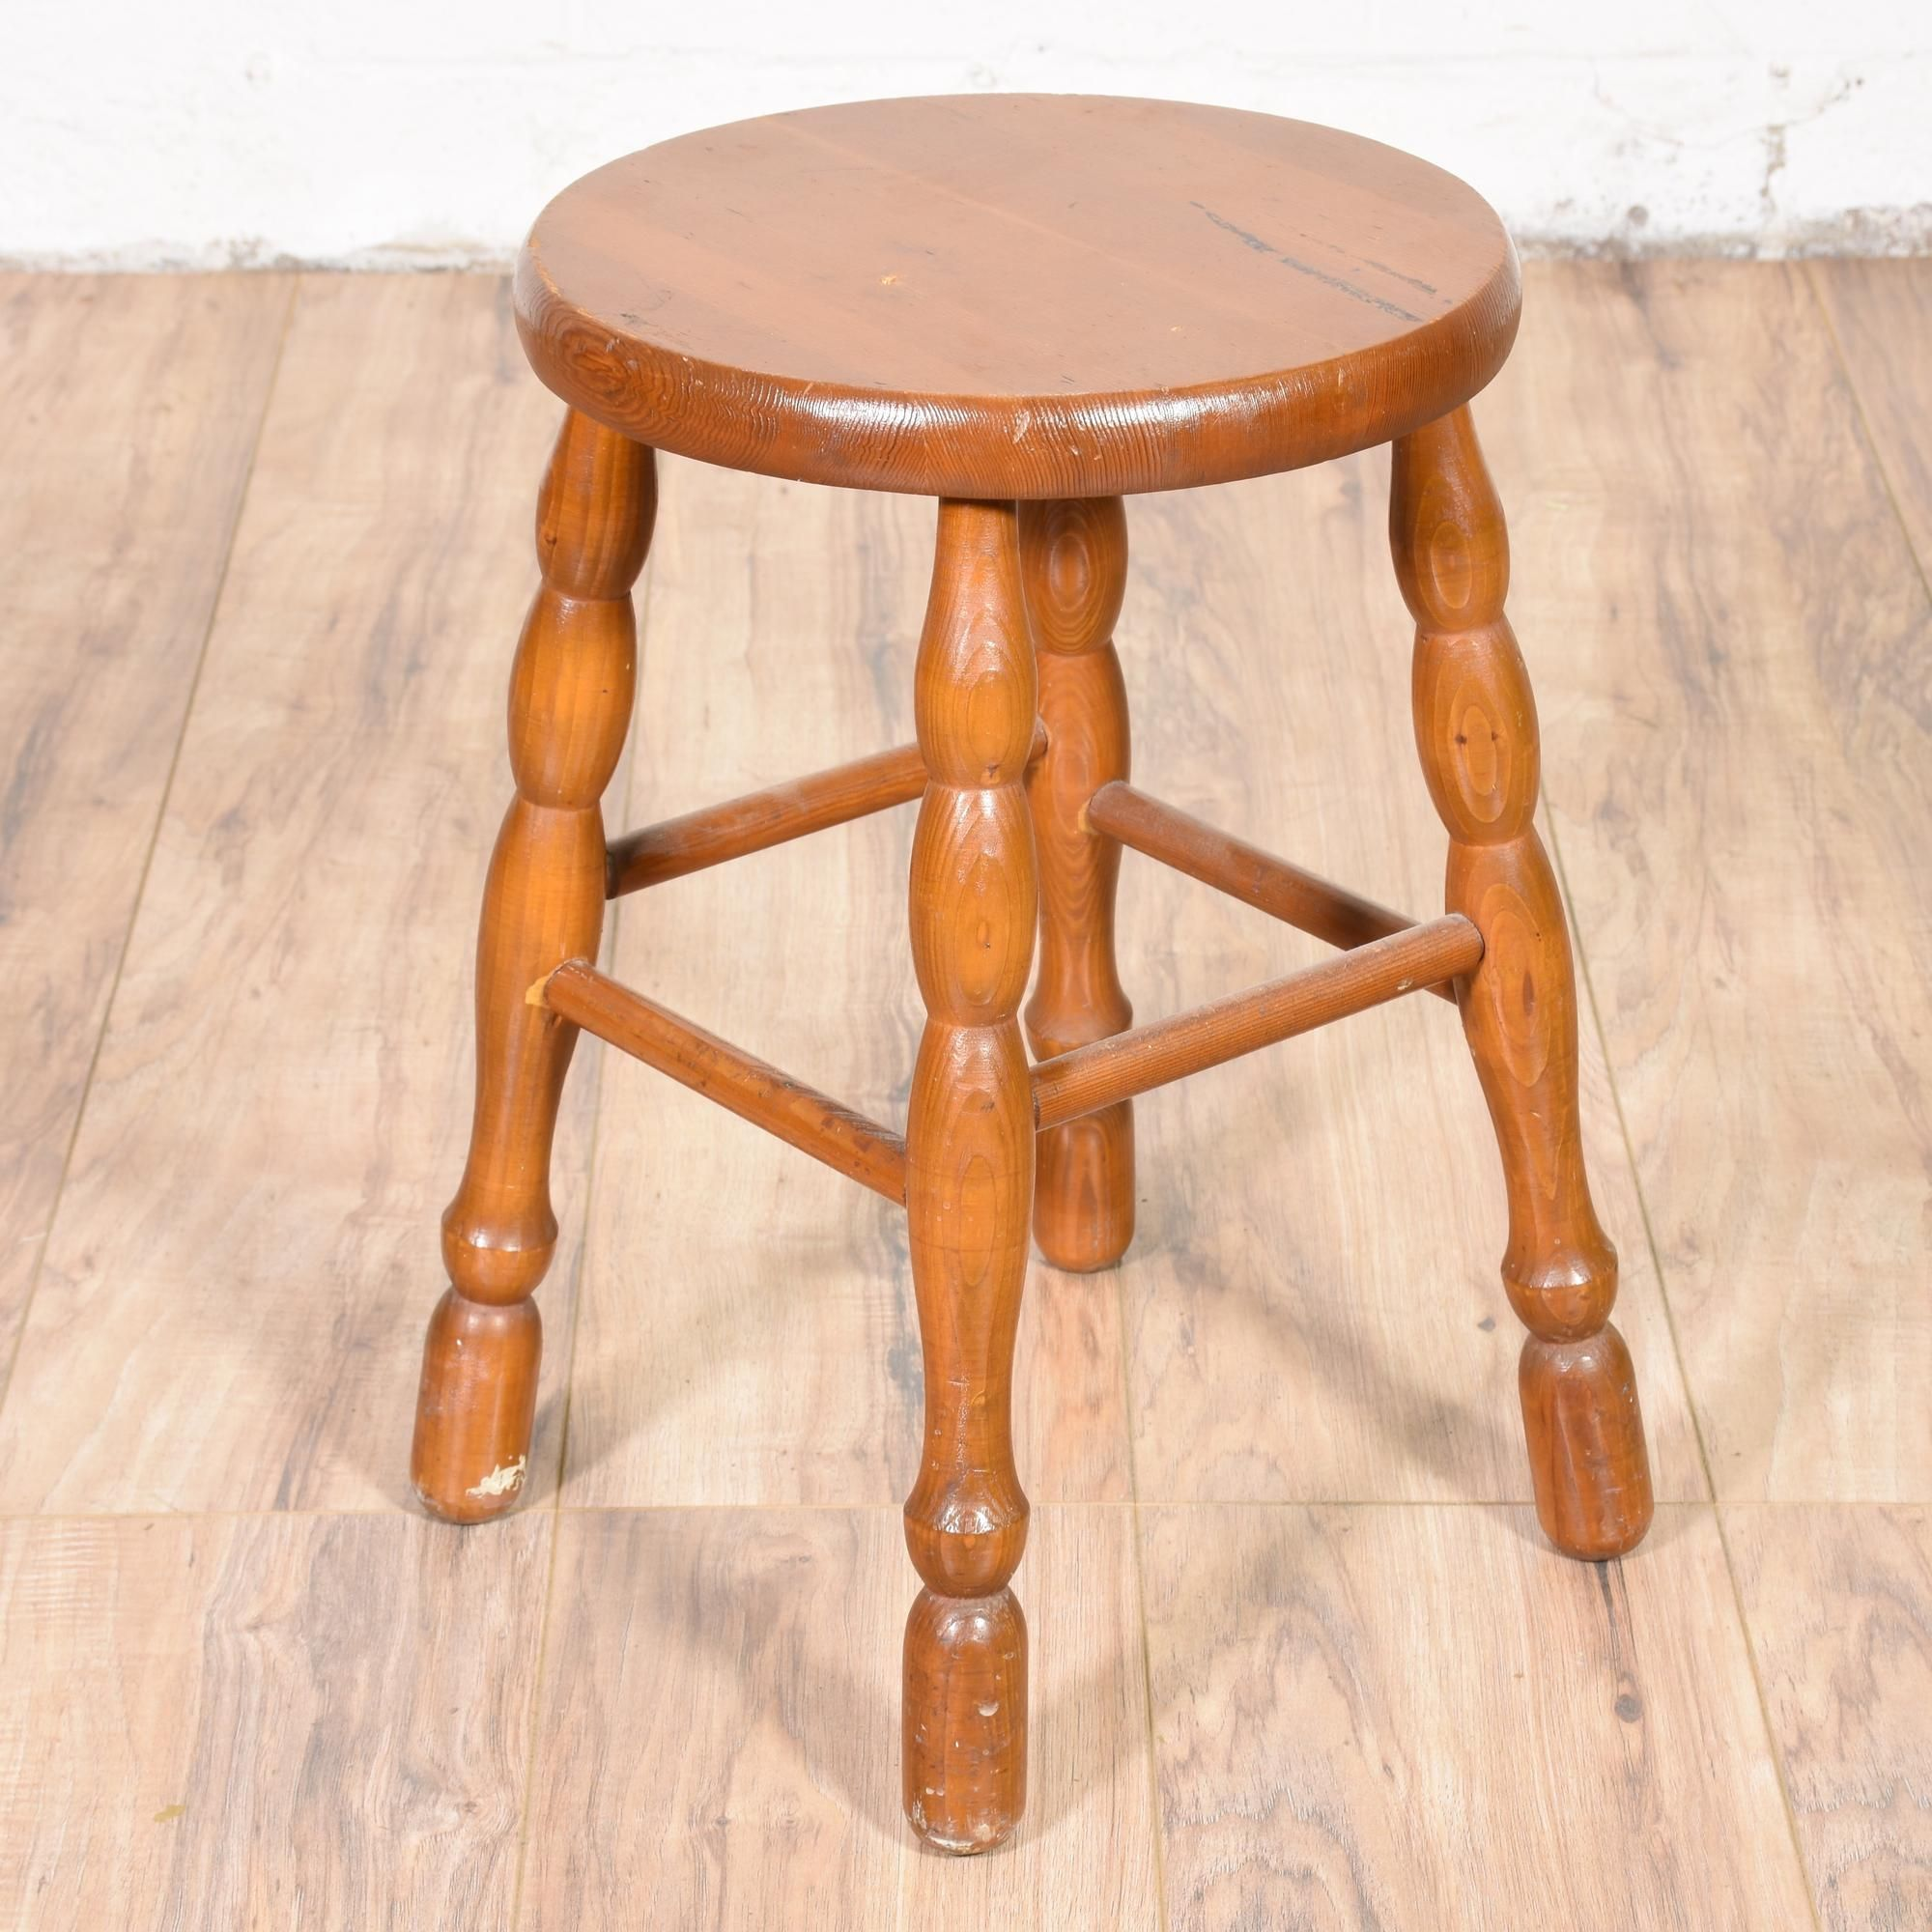 Furniture Legs San Diego eclectic turned leg stool | small stool, stools and san diego